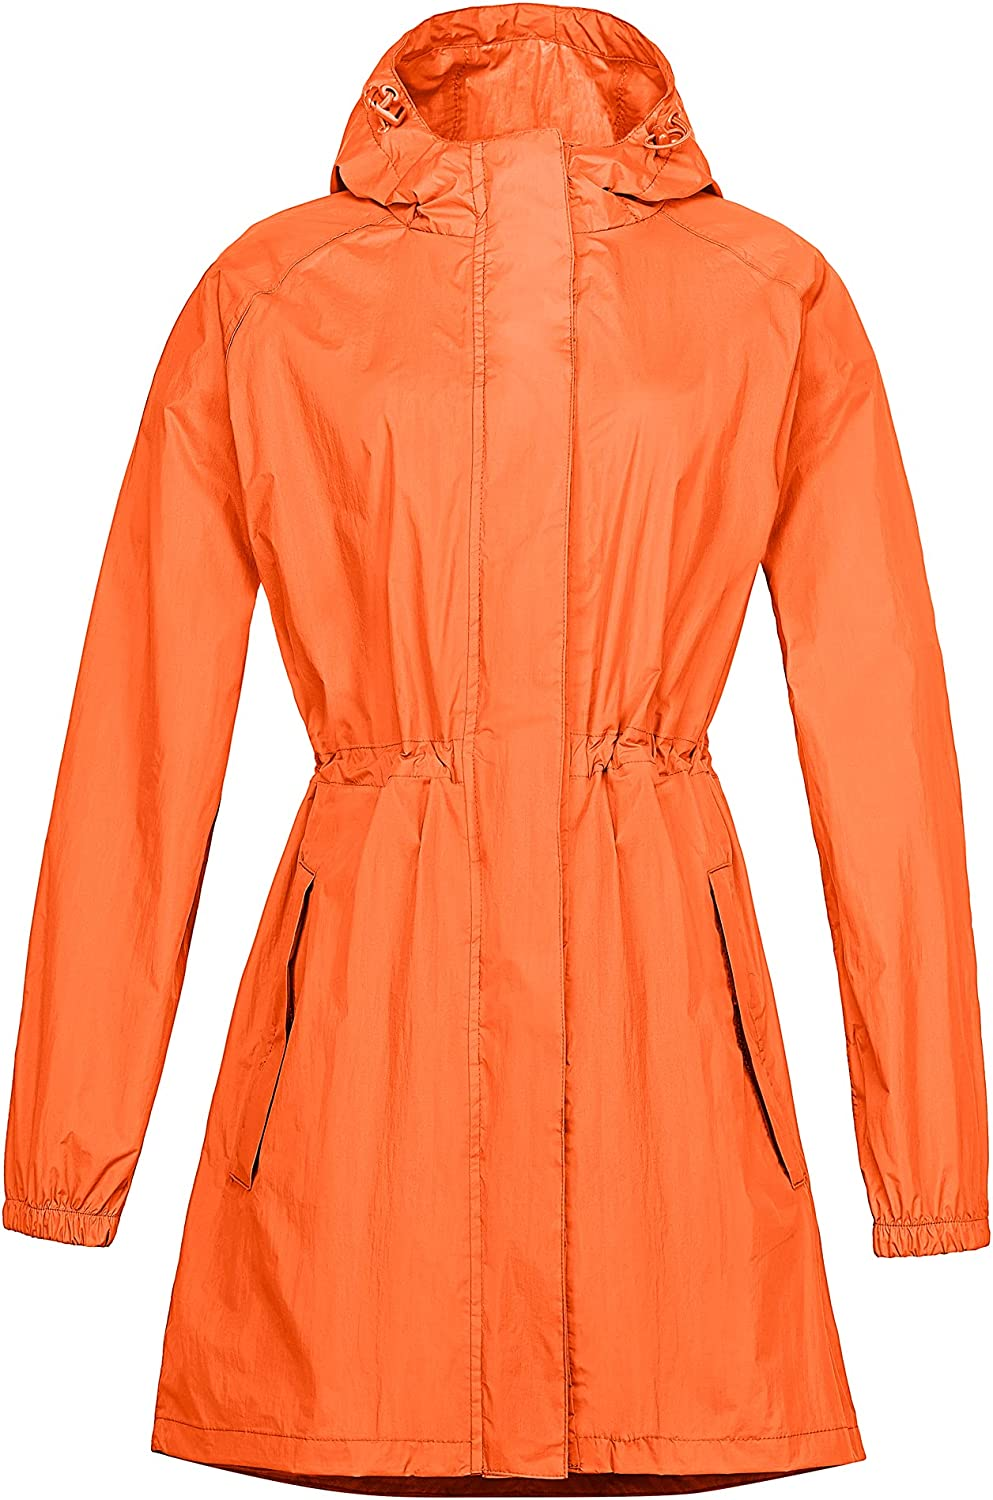 33 5% OFF 000ft Women's Long Rain with Waterproof Limited time for free shipping Jackets Packable Hood